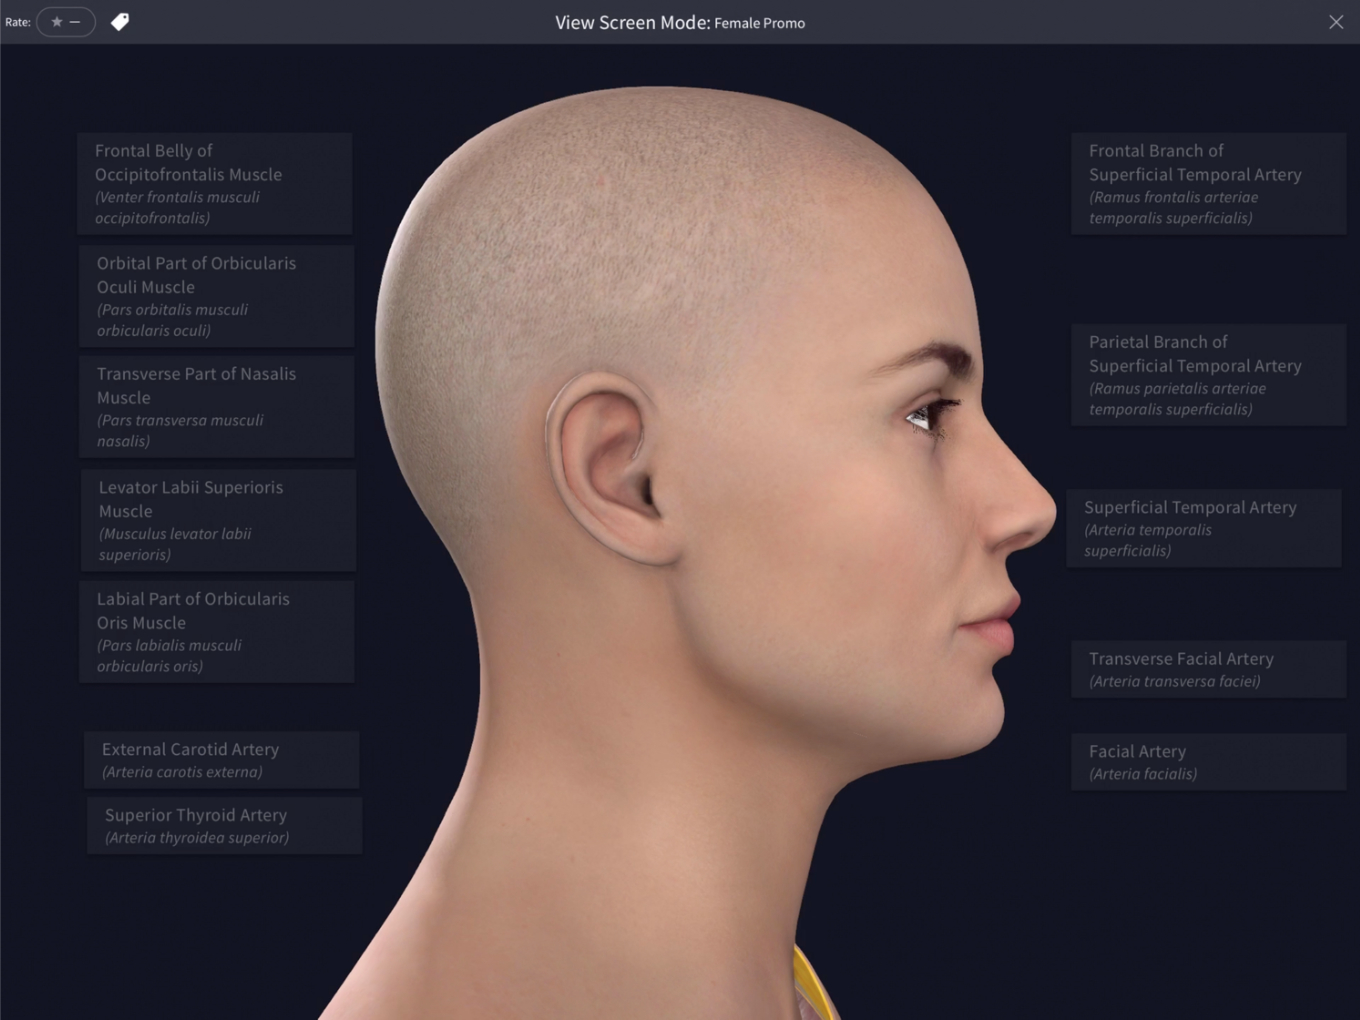 Complete Anatomy – The world's most advanced 3D anatomy platform